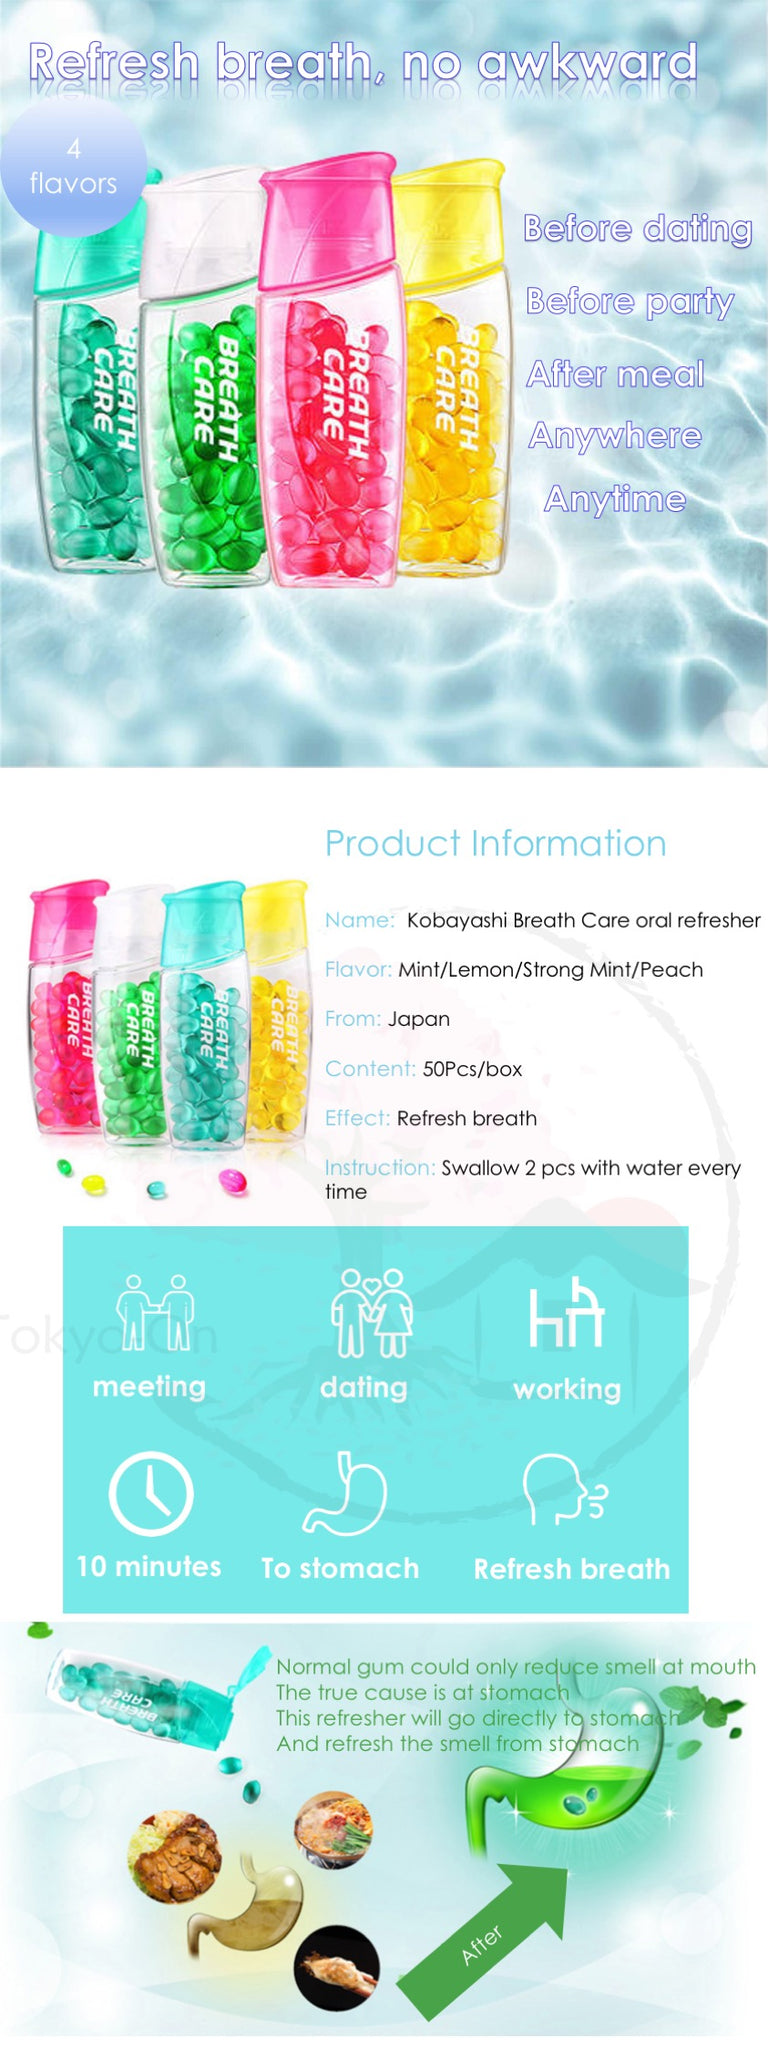 Tokyo-On Kobayashi Breath Care Lemon Oral Refresher 50Pcs